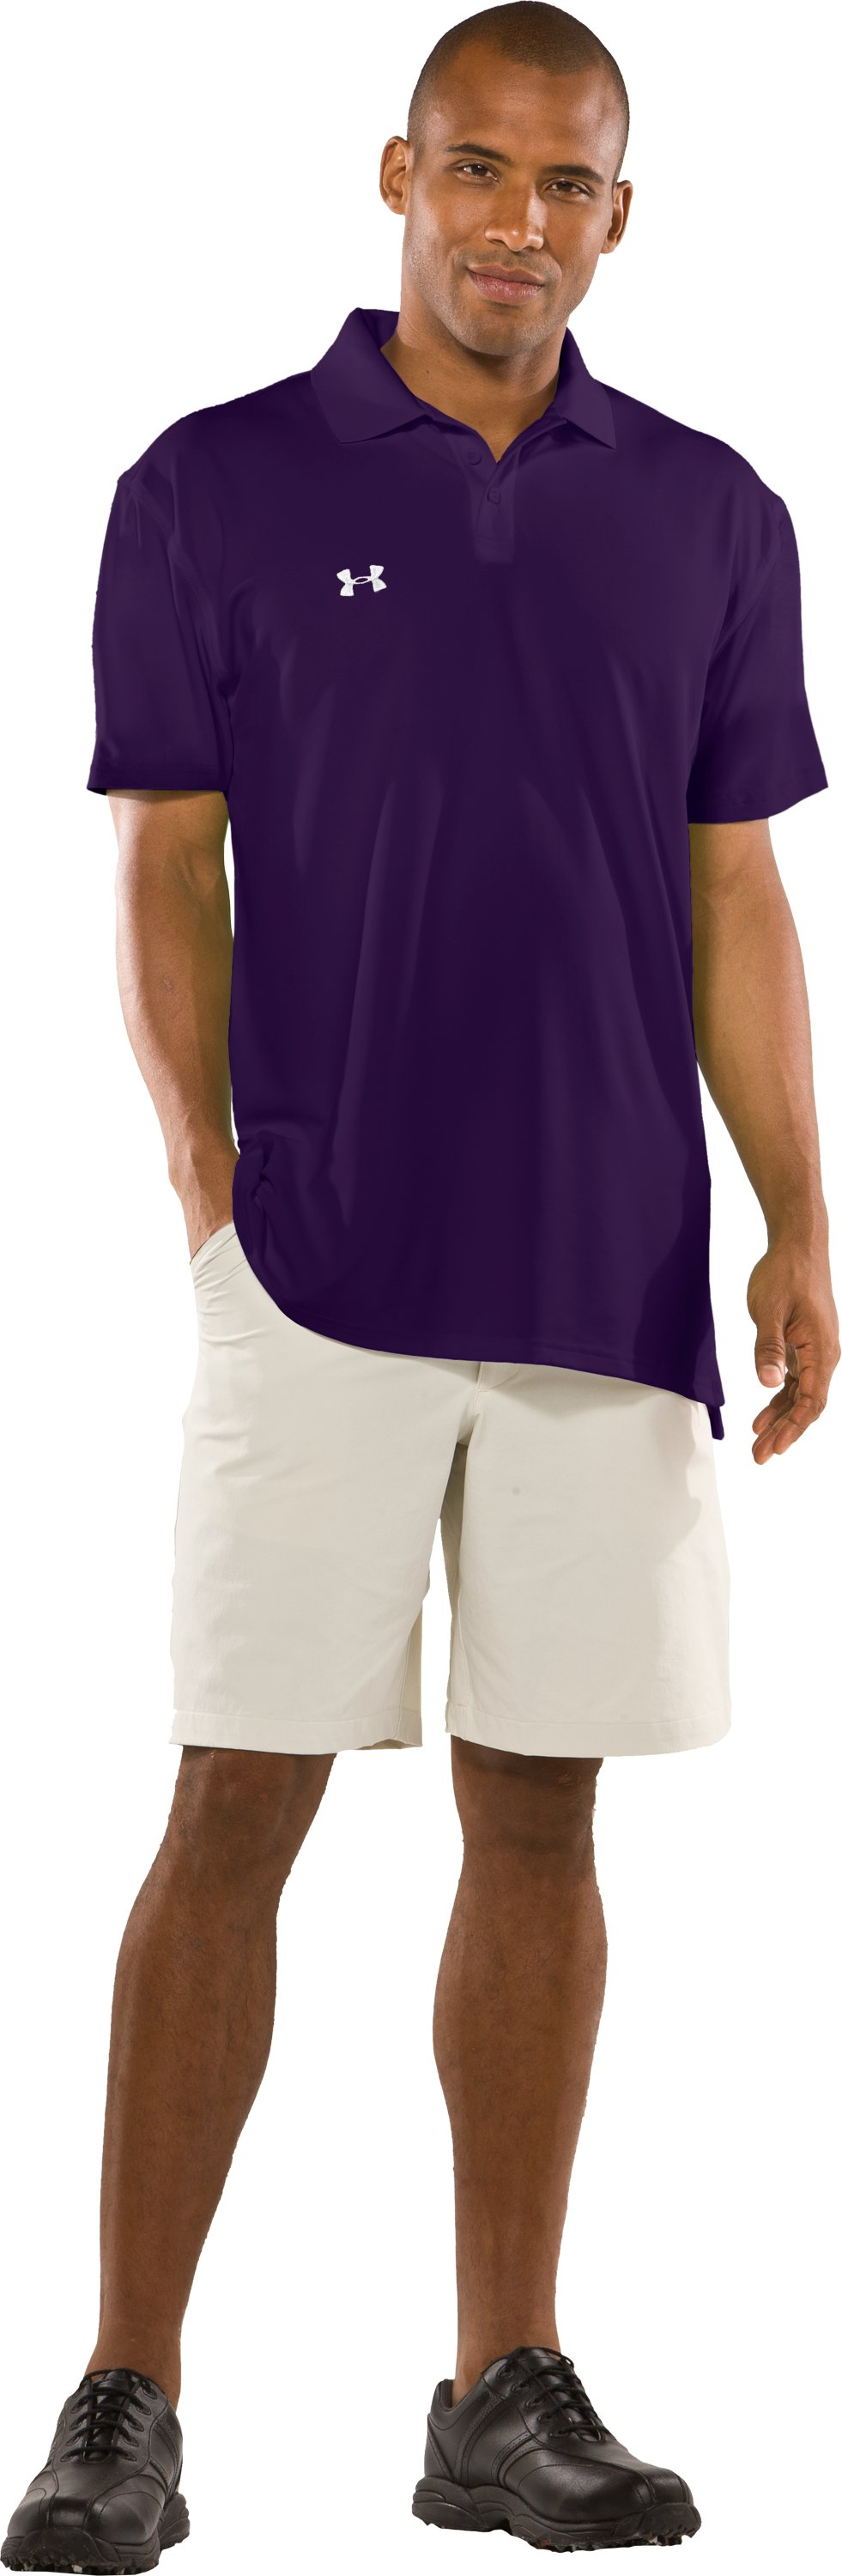 Men's UA Performance Short Sleeve Team Golf Polo, Purple, Front